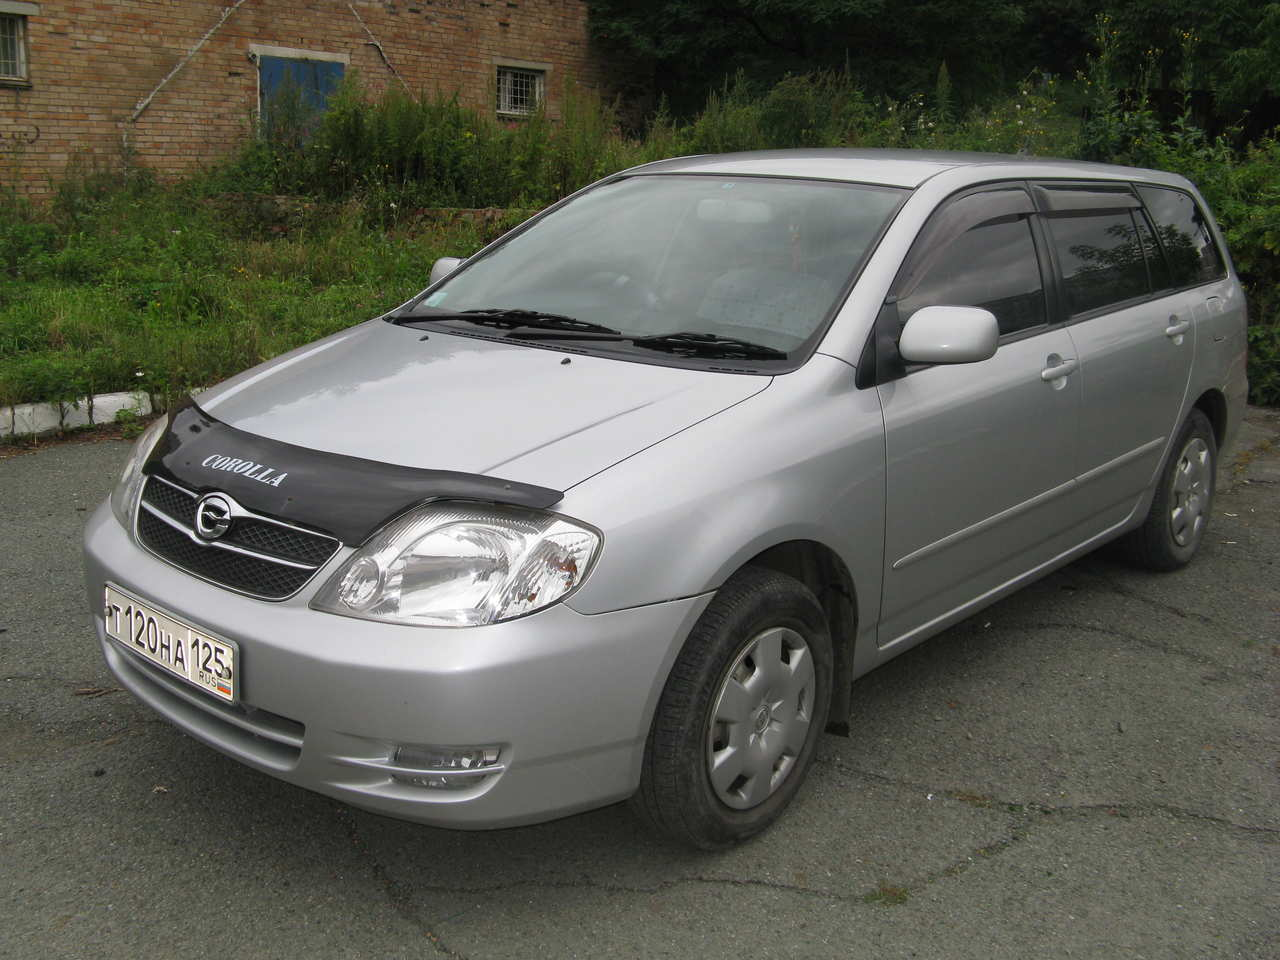 Used 2003 Toyota Corolla Fielder Photos 1500cc Gasoline